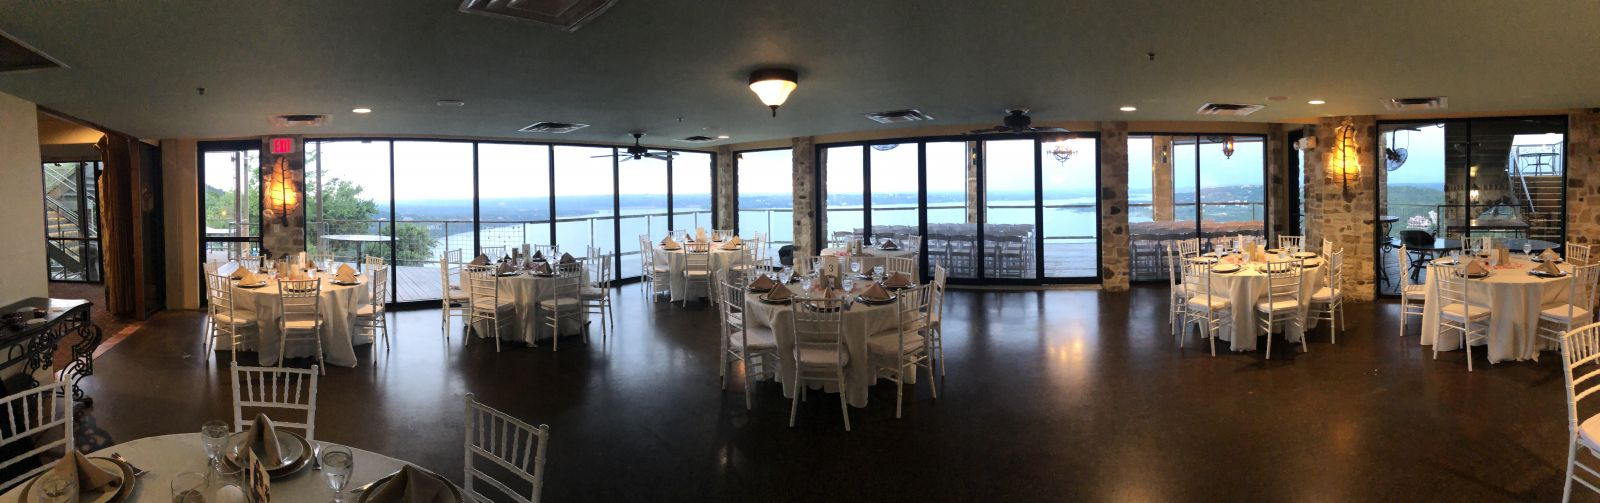 floor n decor austin.htm austin  texas wedding venue the oasis on lake travis  austin  texas wedding venue the oasis